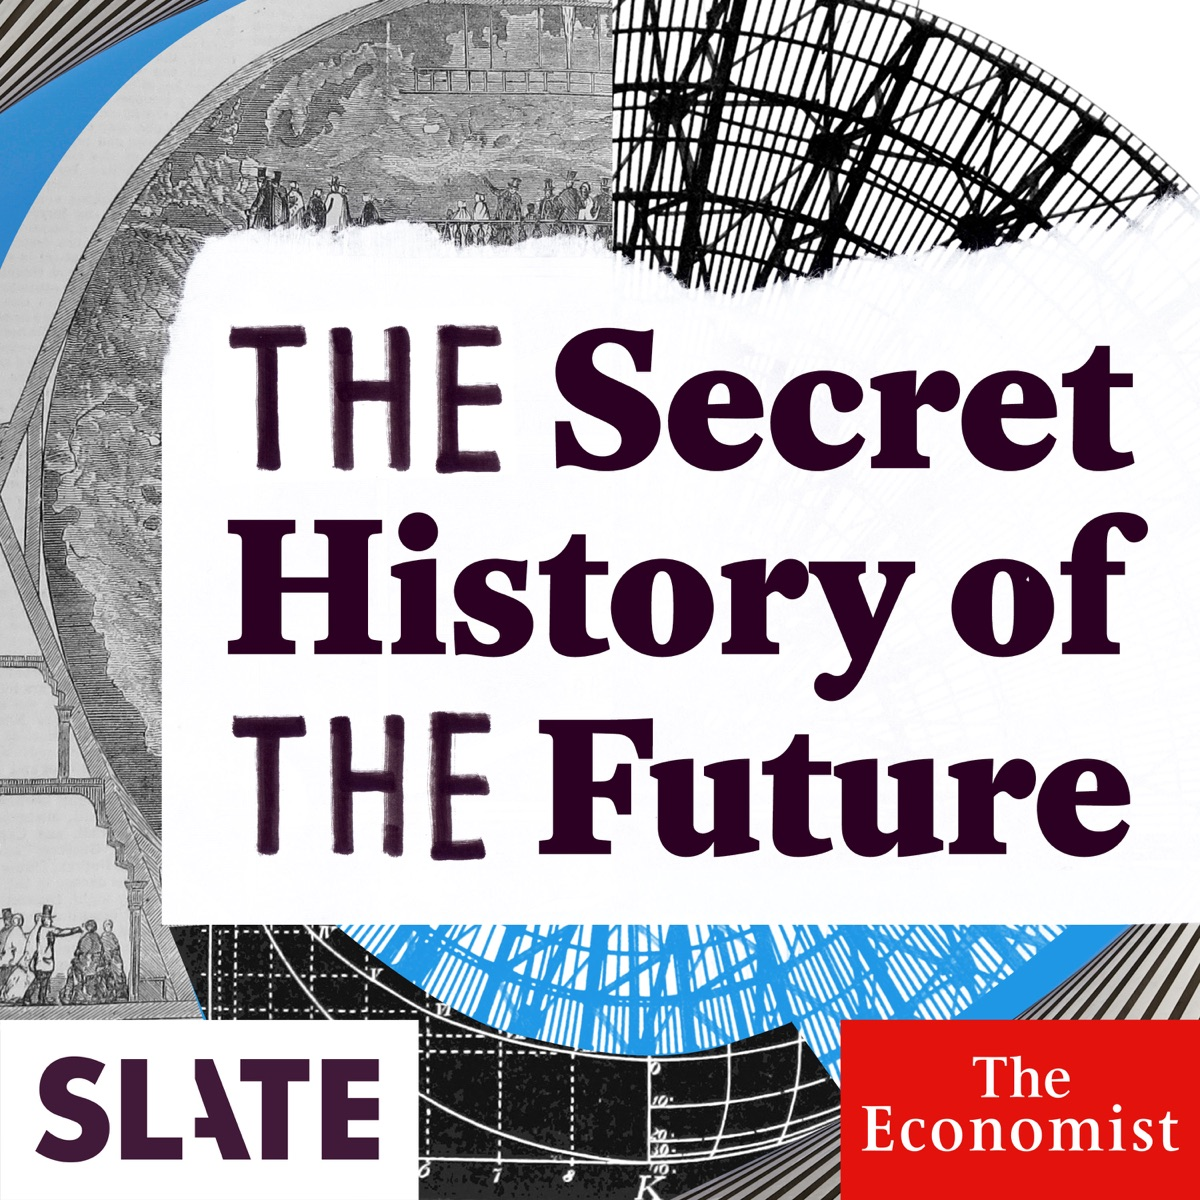 The Secret History of the Future